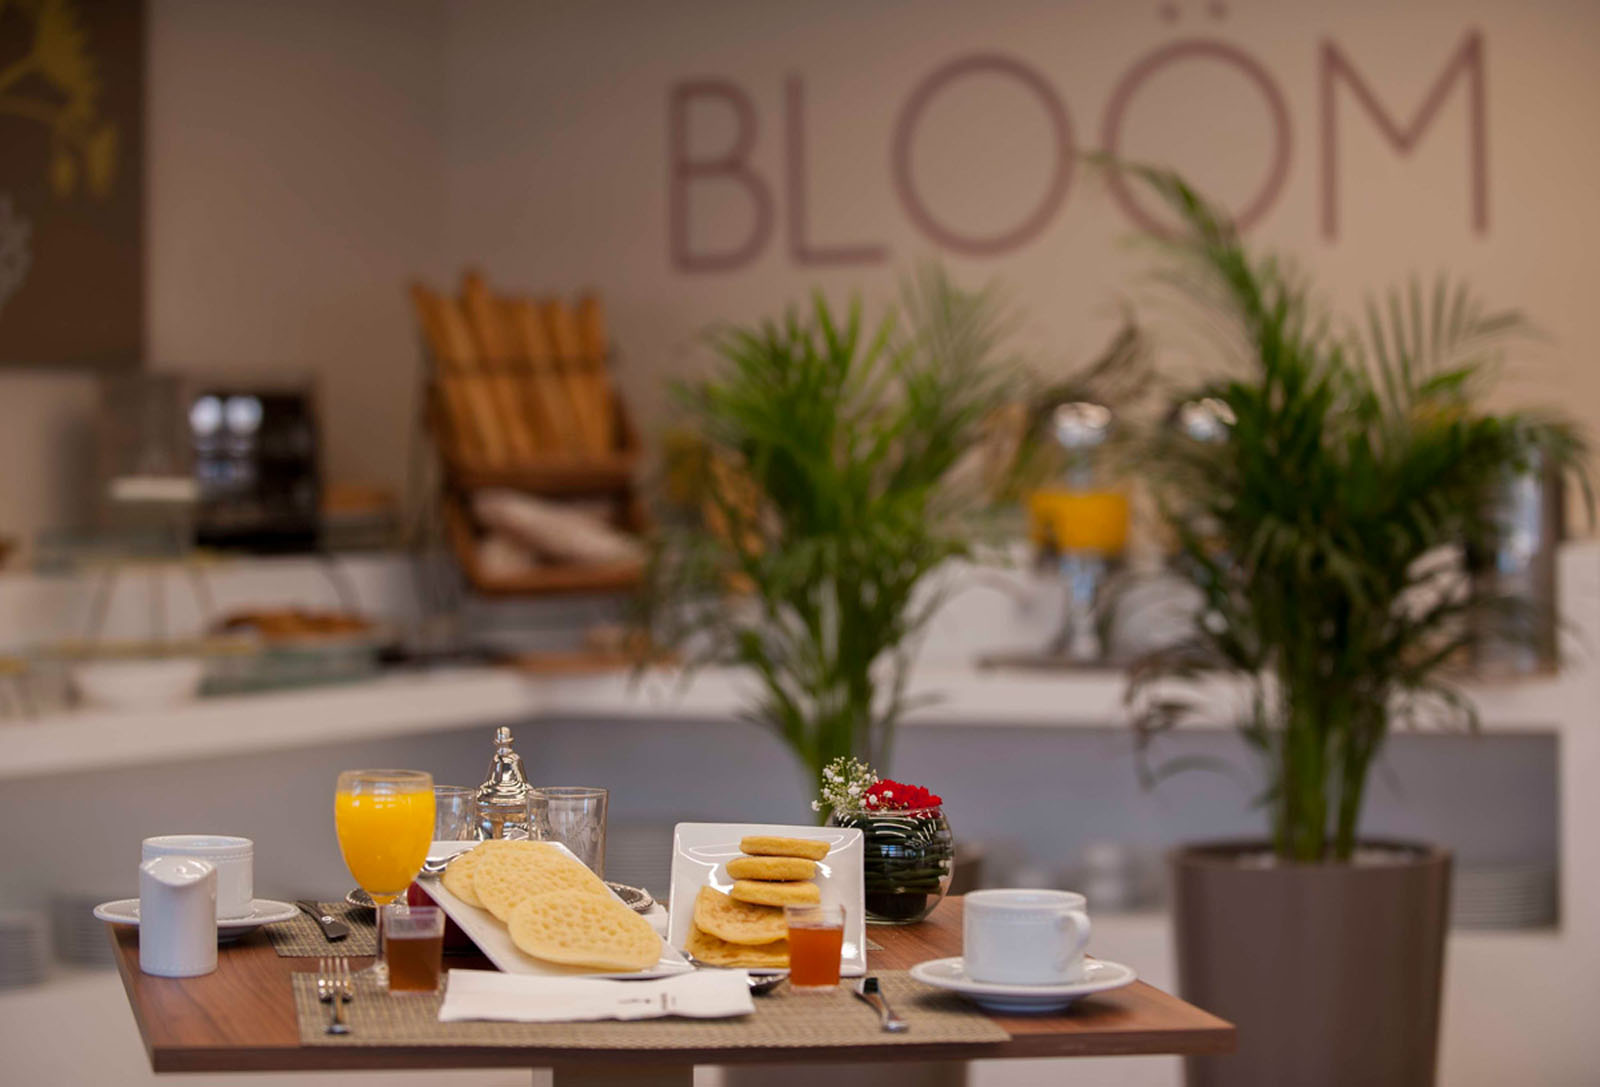 Bloom Restaurant at Kenzi Basma Hotel in Casablanca, Morocco